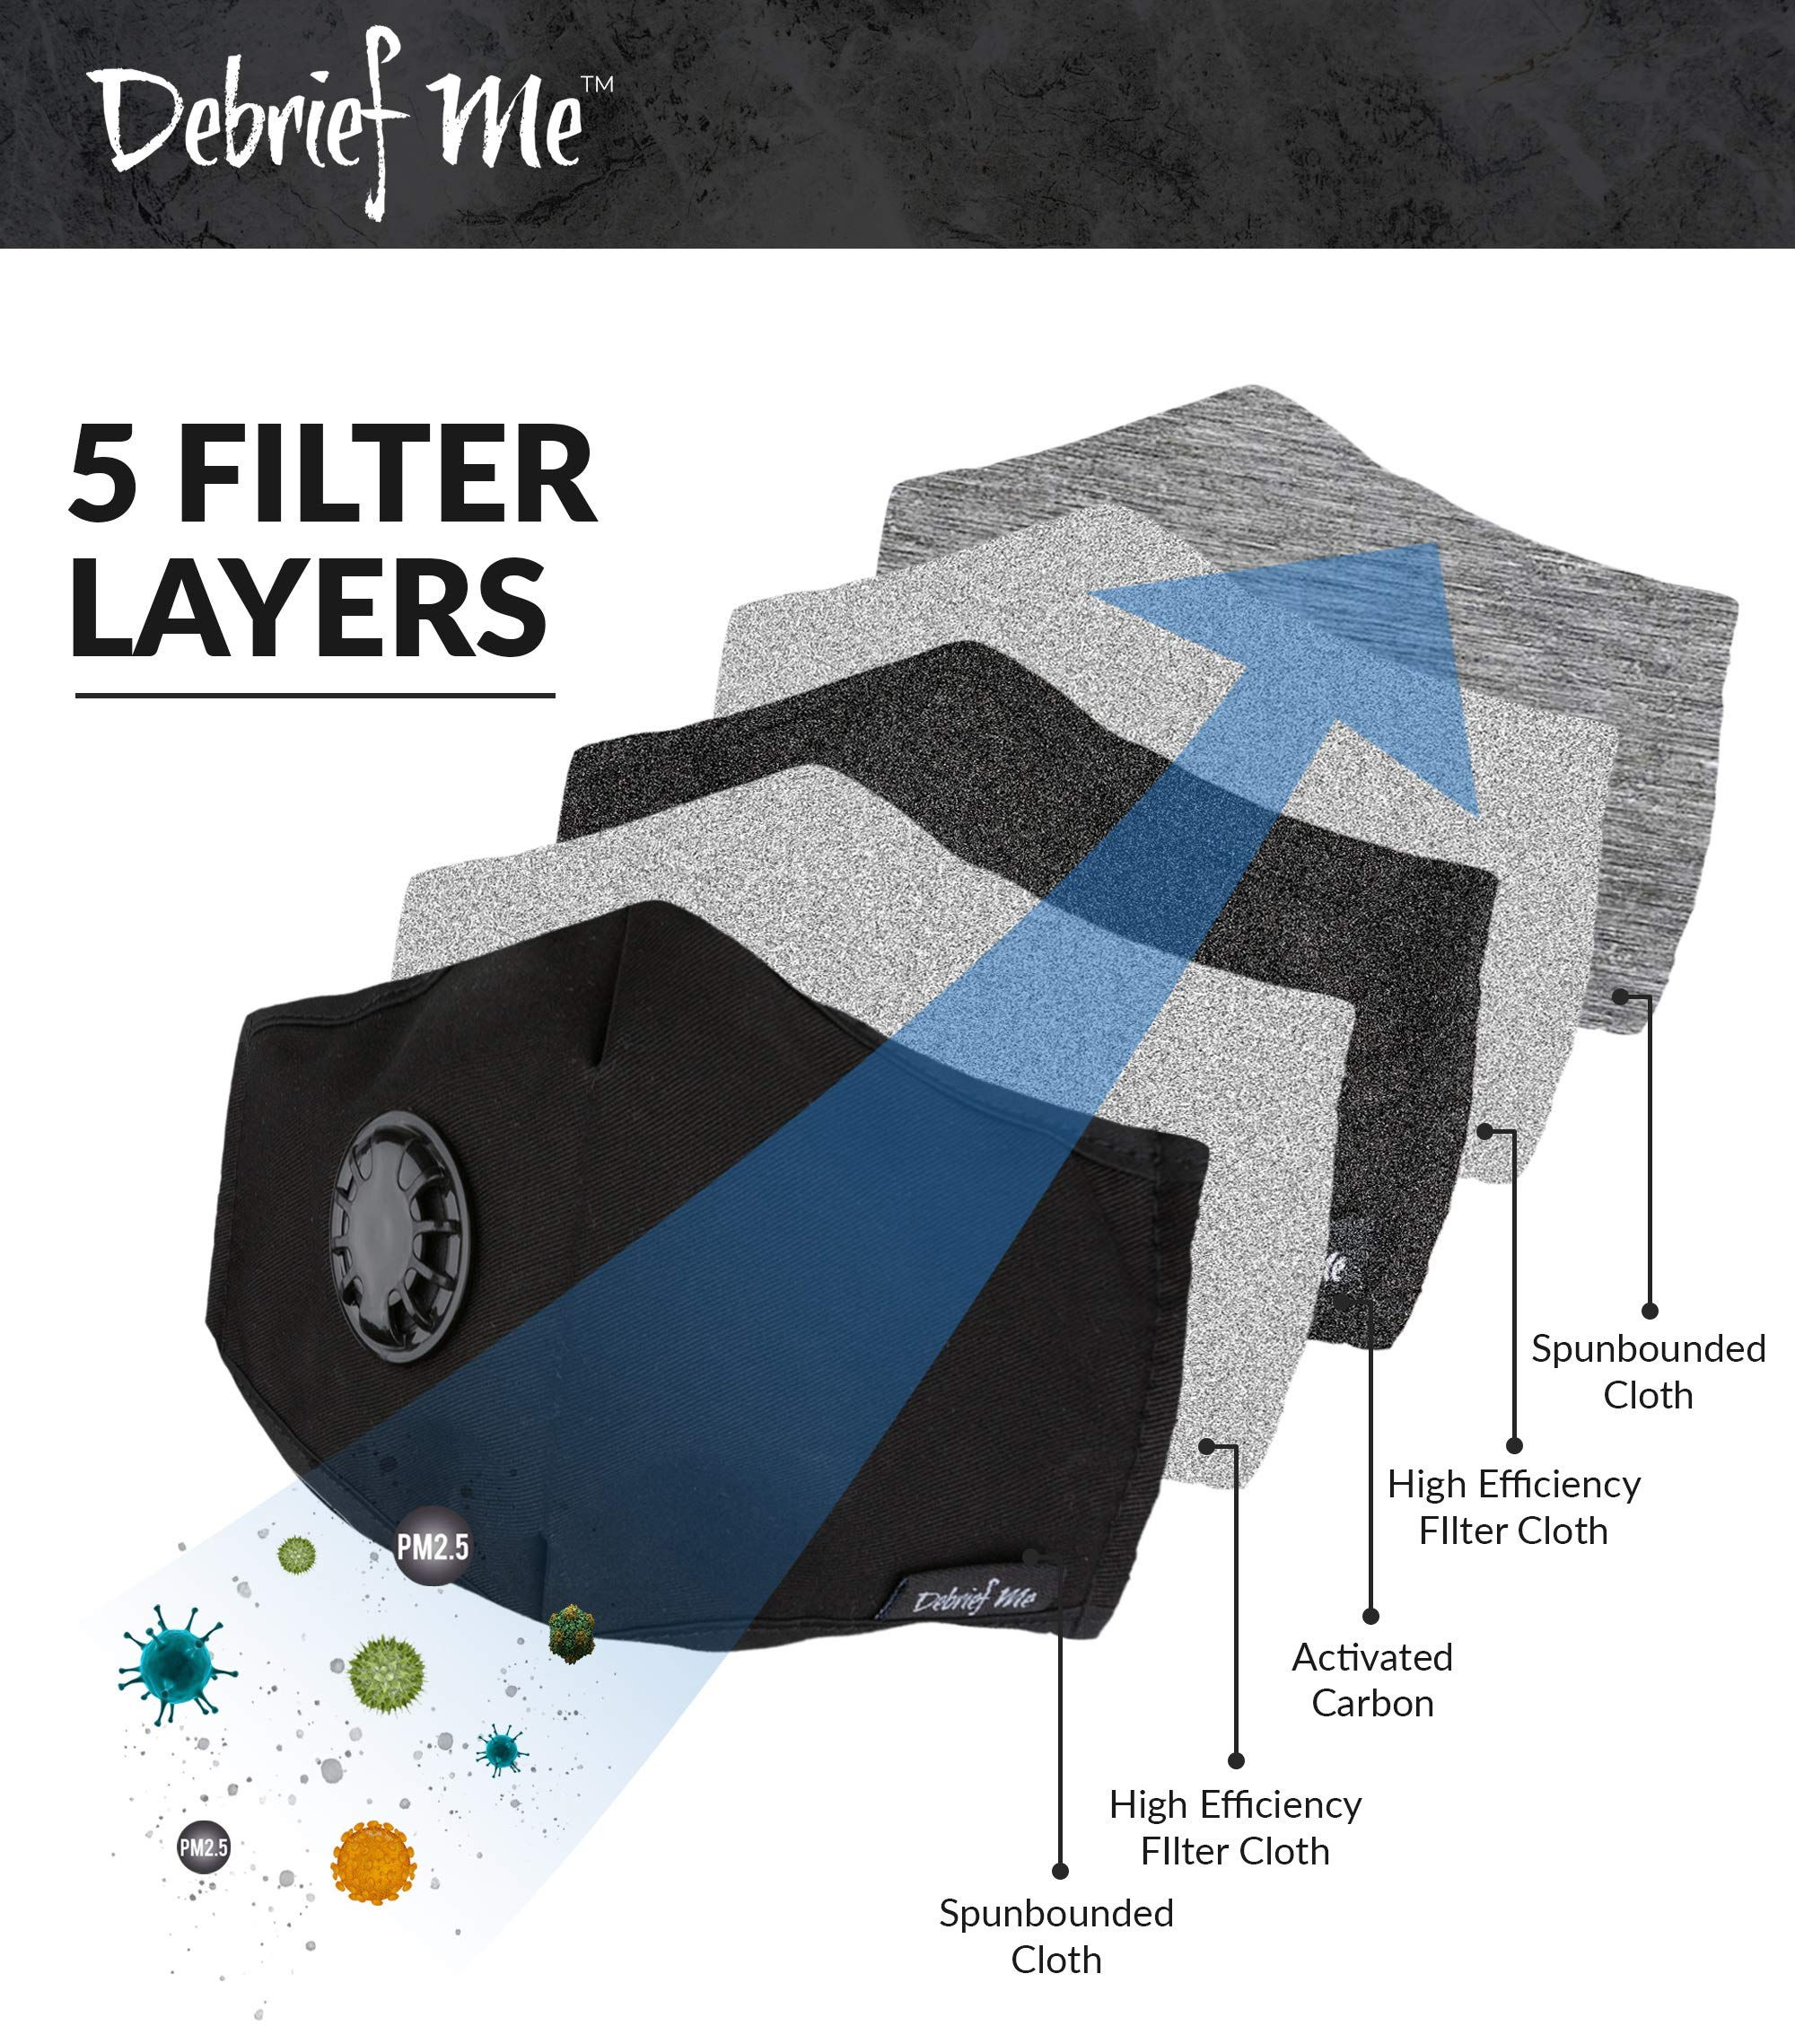 Debrief Me Military Grade N99 (4 Masks) Carbon Activated Anti Dust Face Mouth Cover Mask Respirator-Dustproof Anti-bacterial Washable -Reusable Respirator Comfy-Cotton(N99-4Color) by Debrief Me (Image #7)